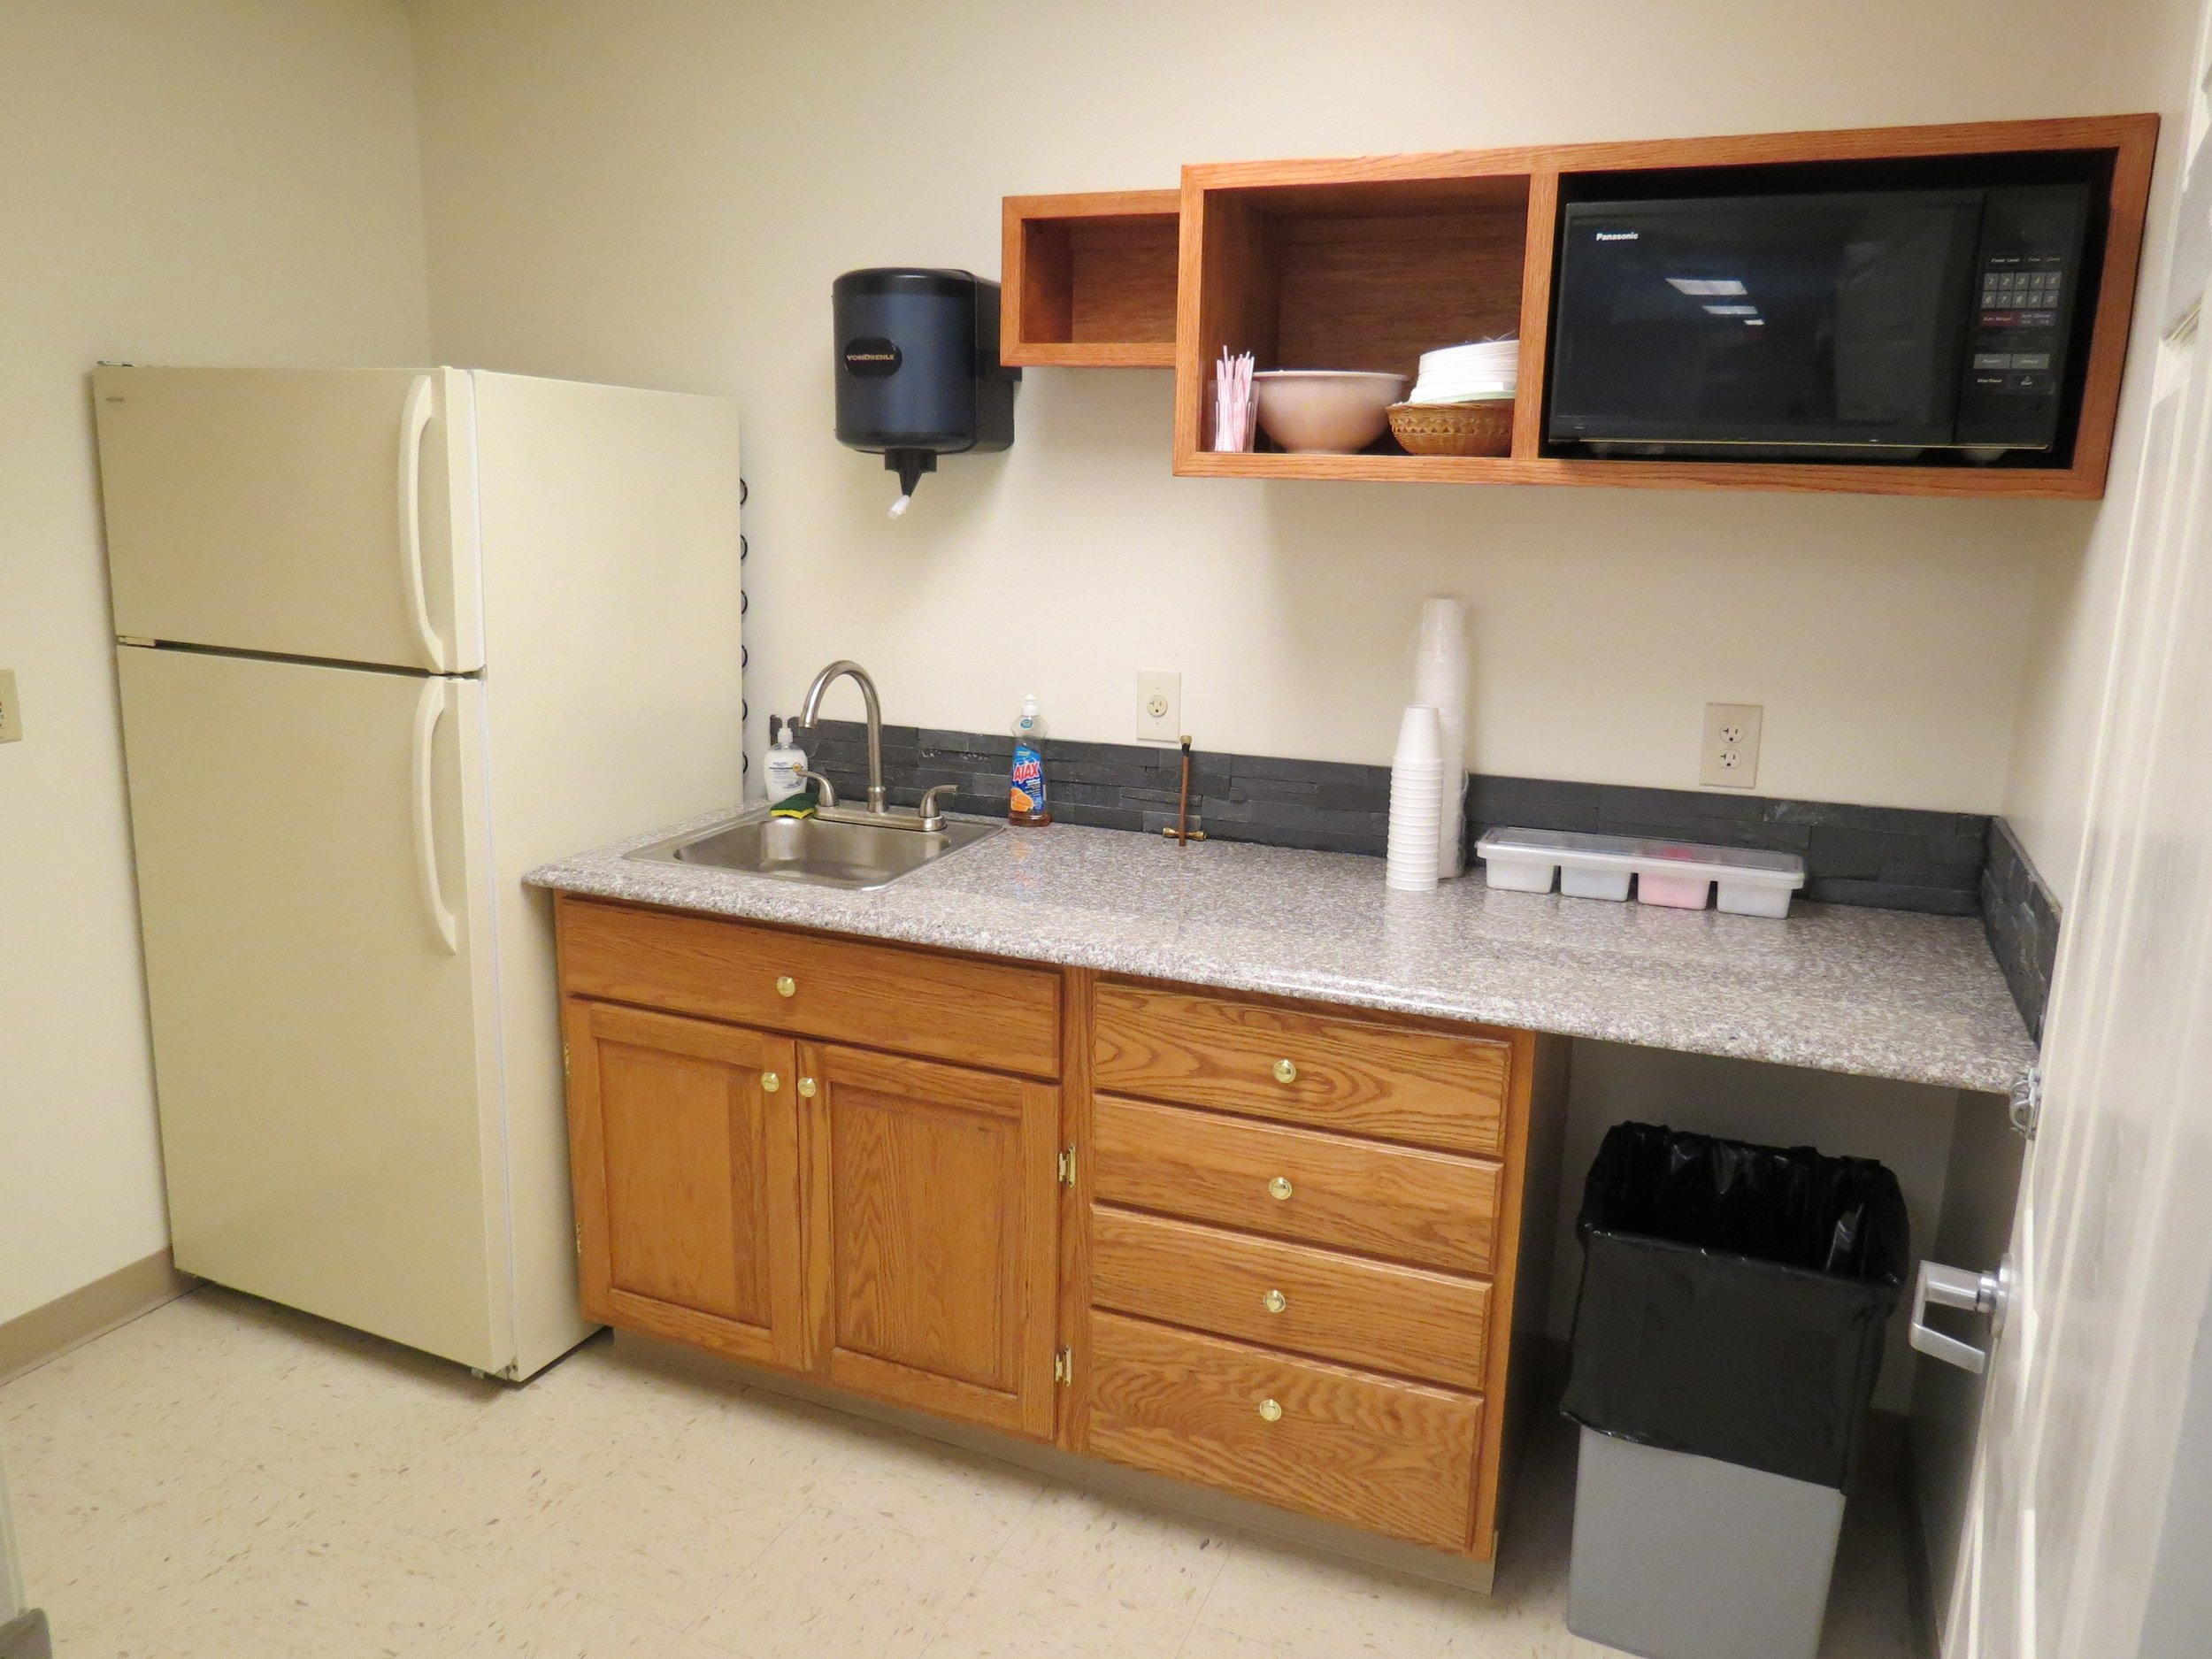 Poplar-Kitchenette-03-21-2015-01.JPG